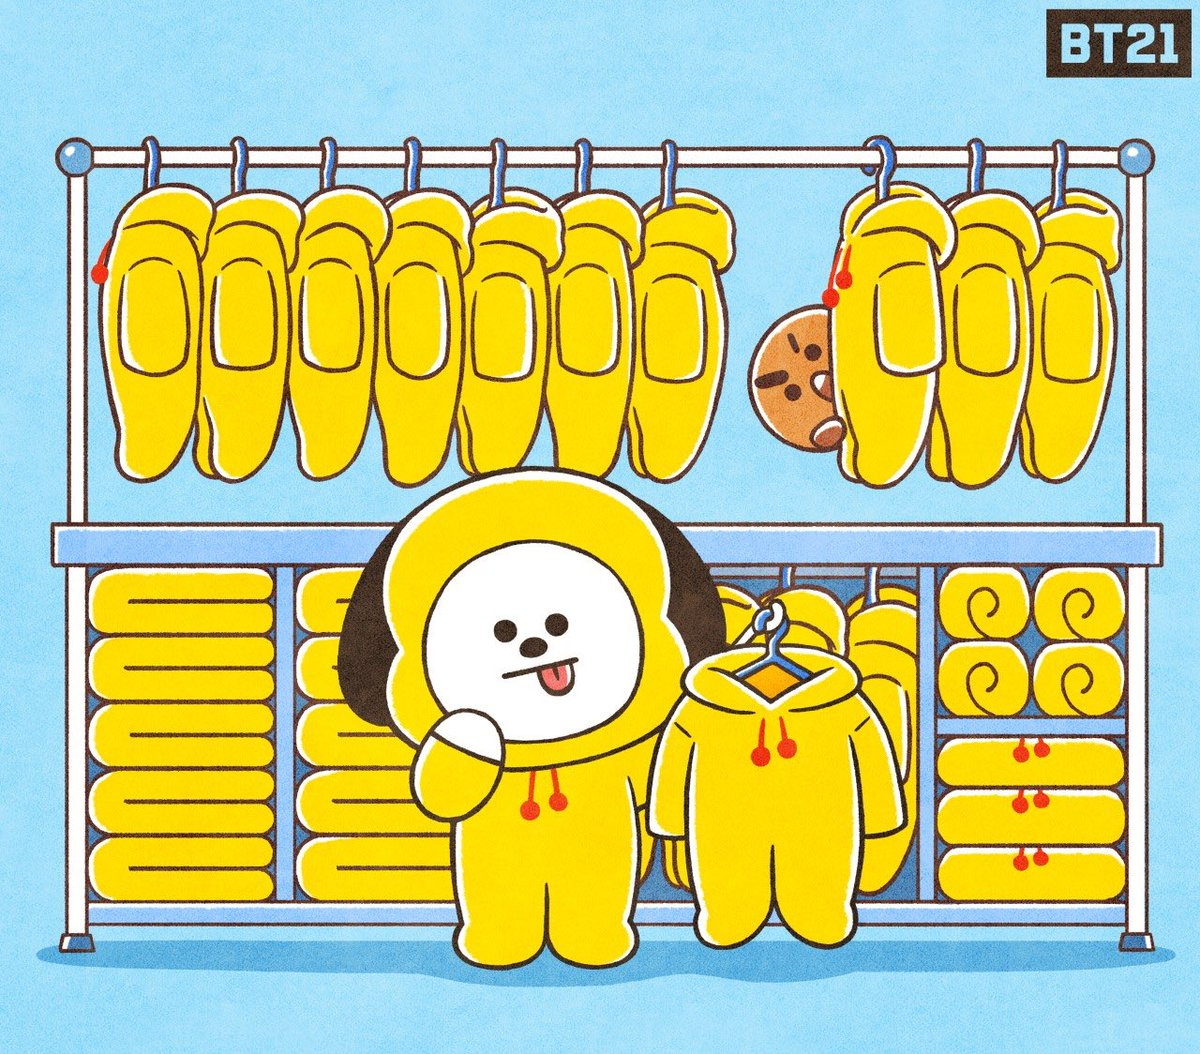 Bt21 On Twitter Hmmm What To Wear Today Chimmy Deep In Thought Ootd Shooky Bt21 So here we go watching baby chimmy and jimin baby in one frame. thought ootd shooky bt21